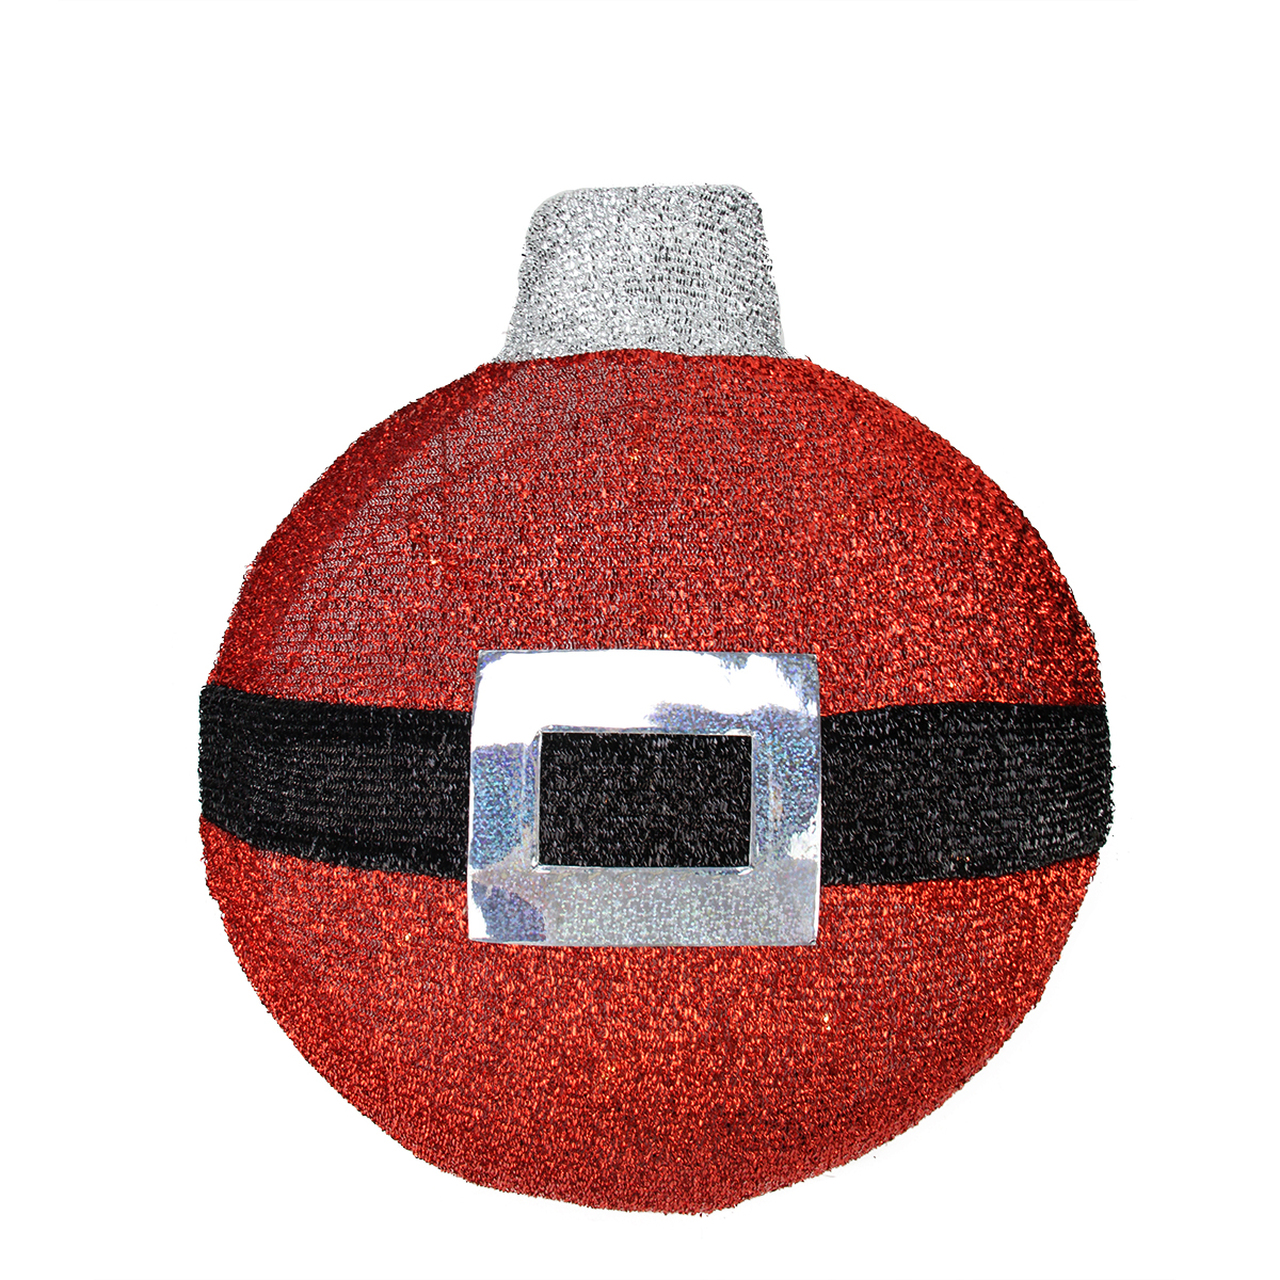 1725 led lighted red and black tinsel santa belt ornament hanging christmas wall decoration 31581391 - Lighted Christmas Wall Decorations